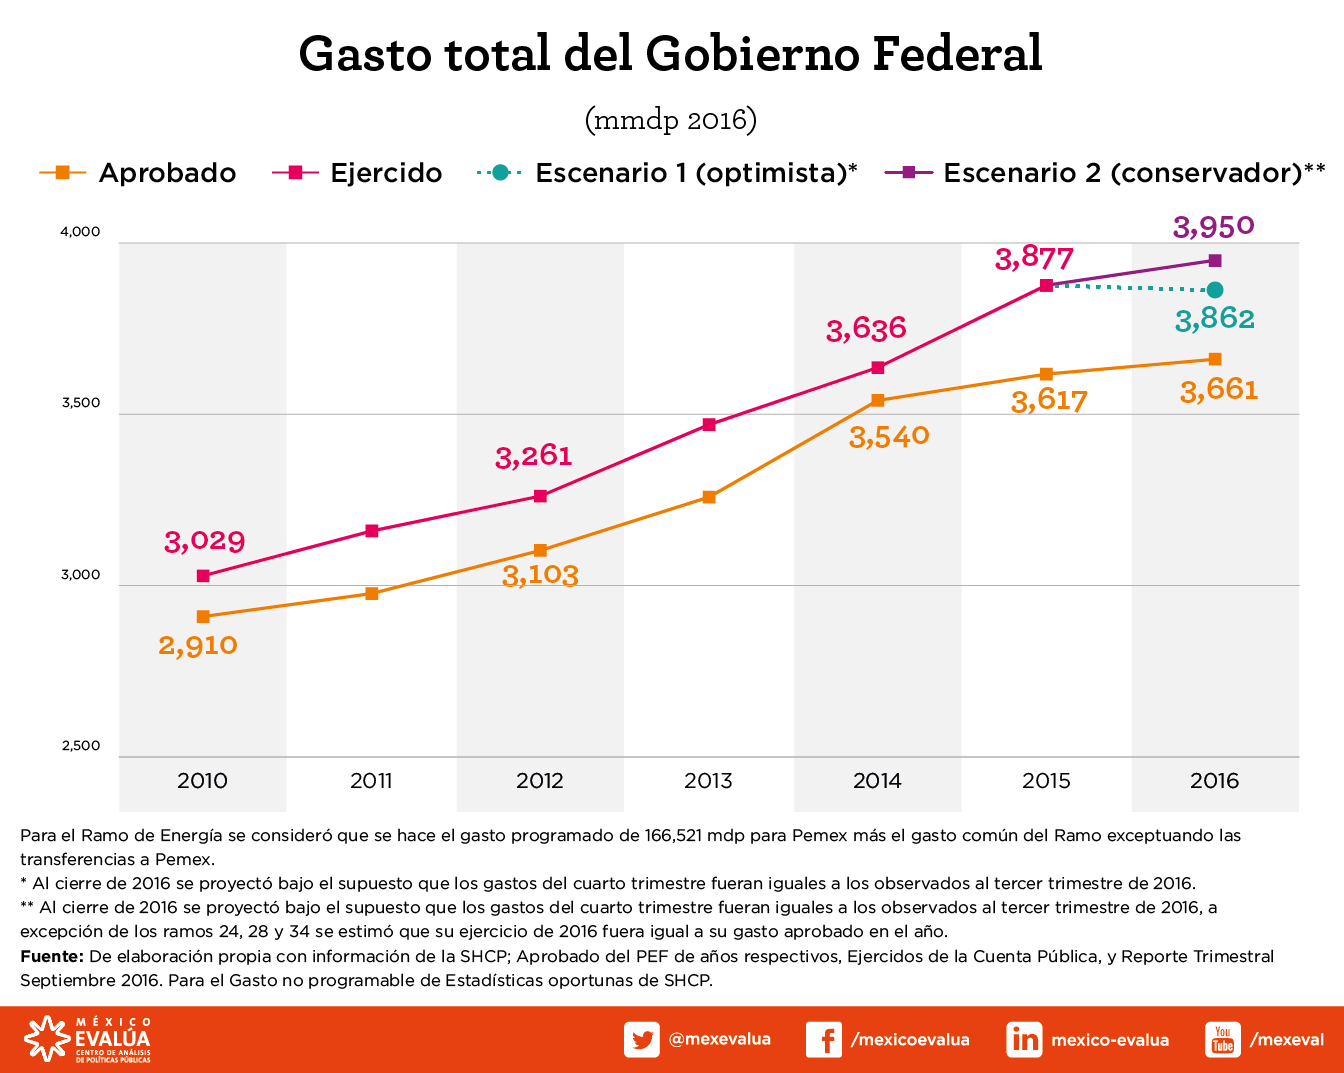 gasto-total-del-gobierno-federal-2016